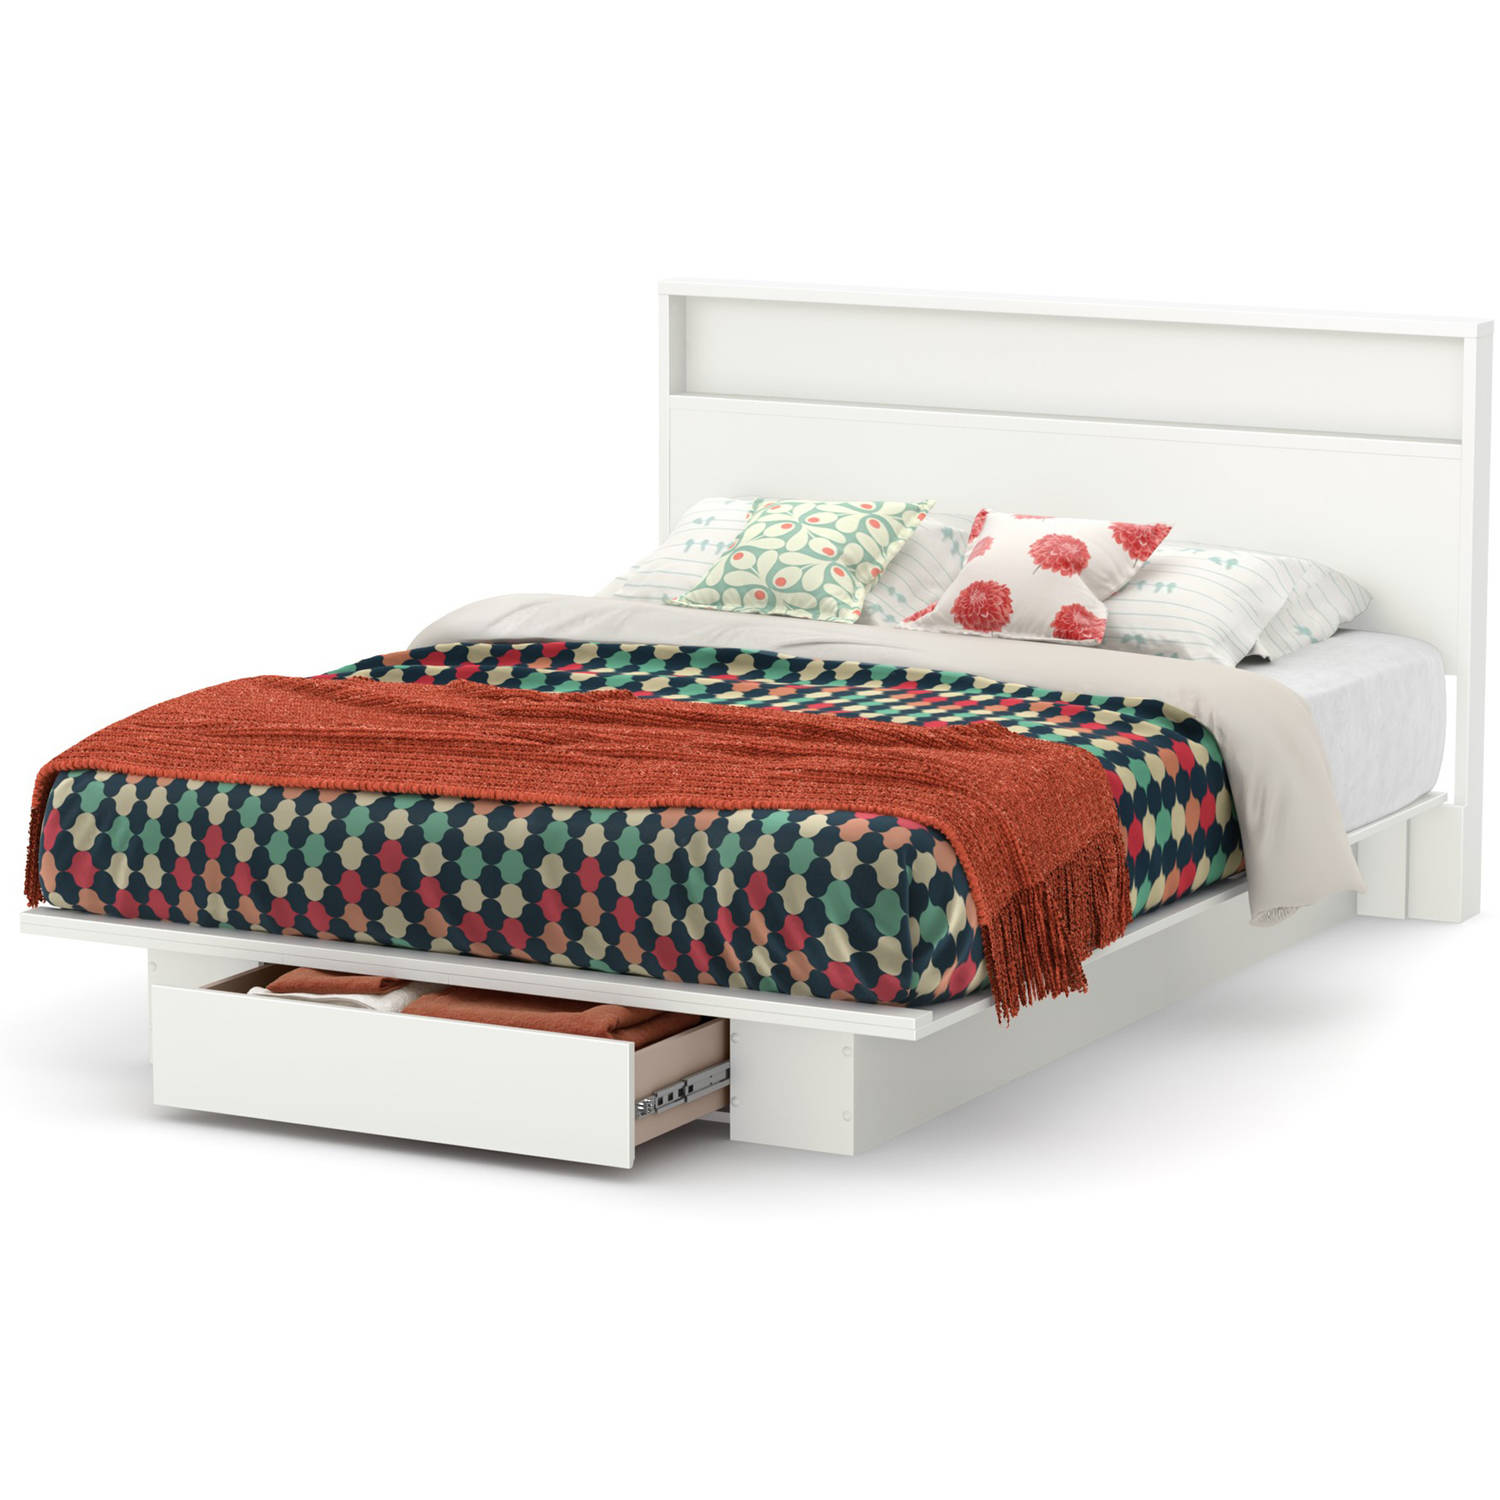 South Shore Holland Full/Queen Platform Bed and Headboard Set, Multiple Finishes